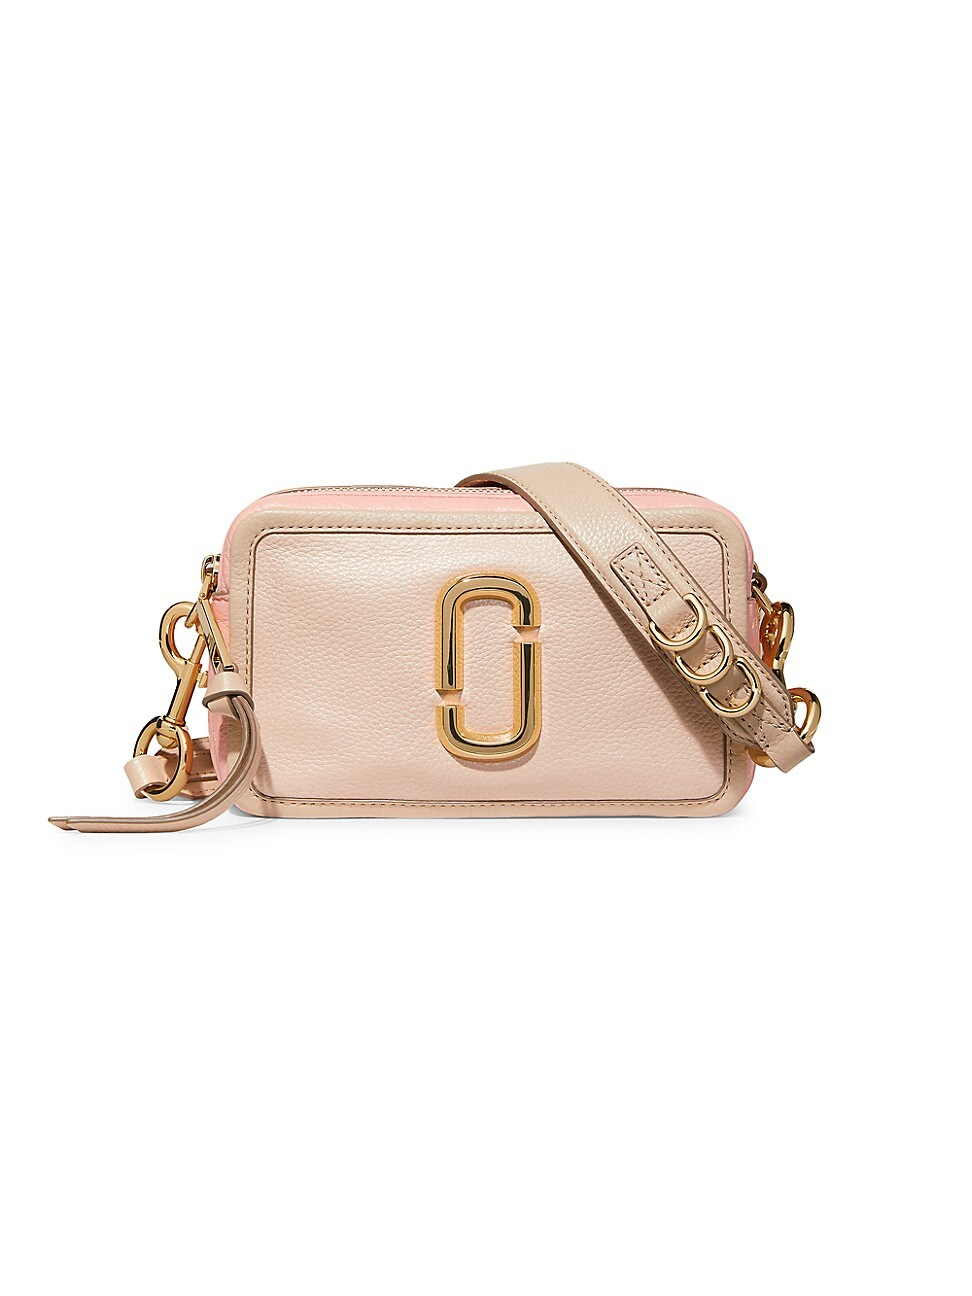 The Marc Jacobs WOMEN'S THE SOFTSHOT LEATHER CAMERA BAG